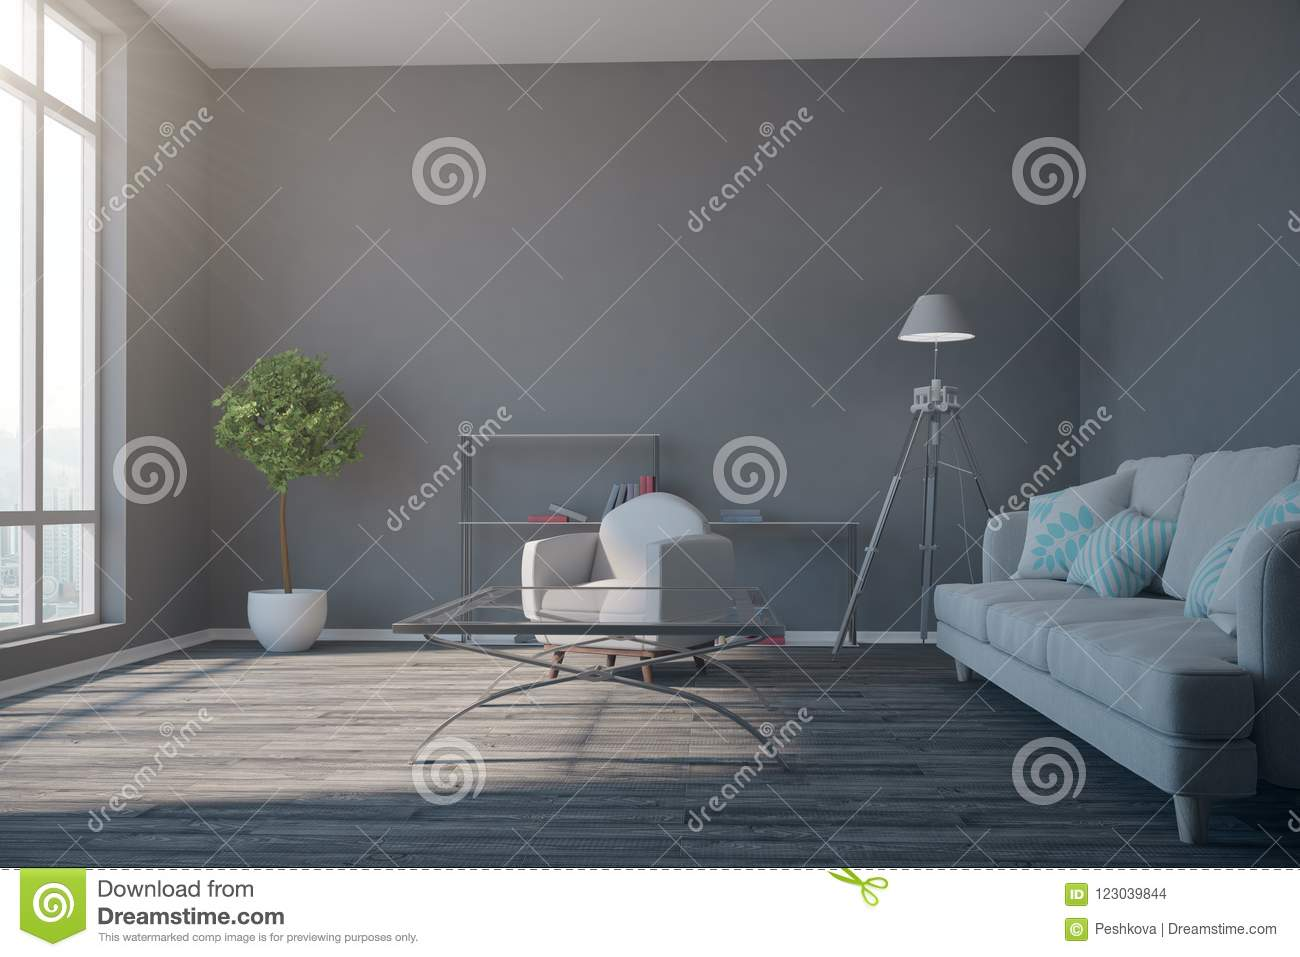 Salon Contemporain Gris Salon Gris Contemporain Illustration Stock Illustration Du Vide